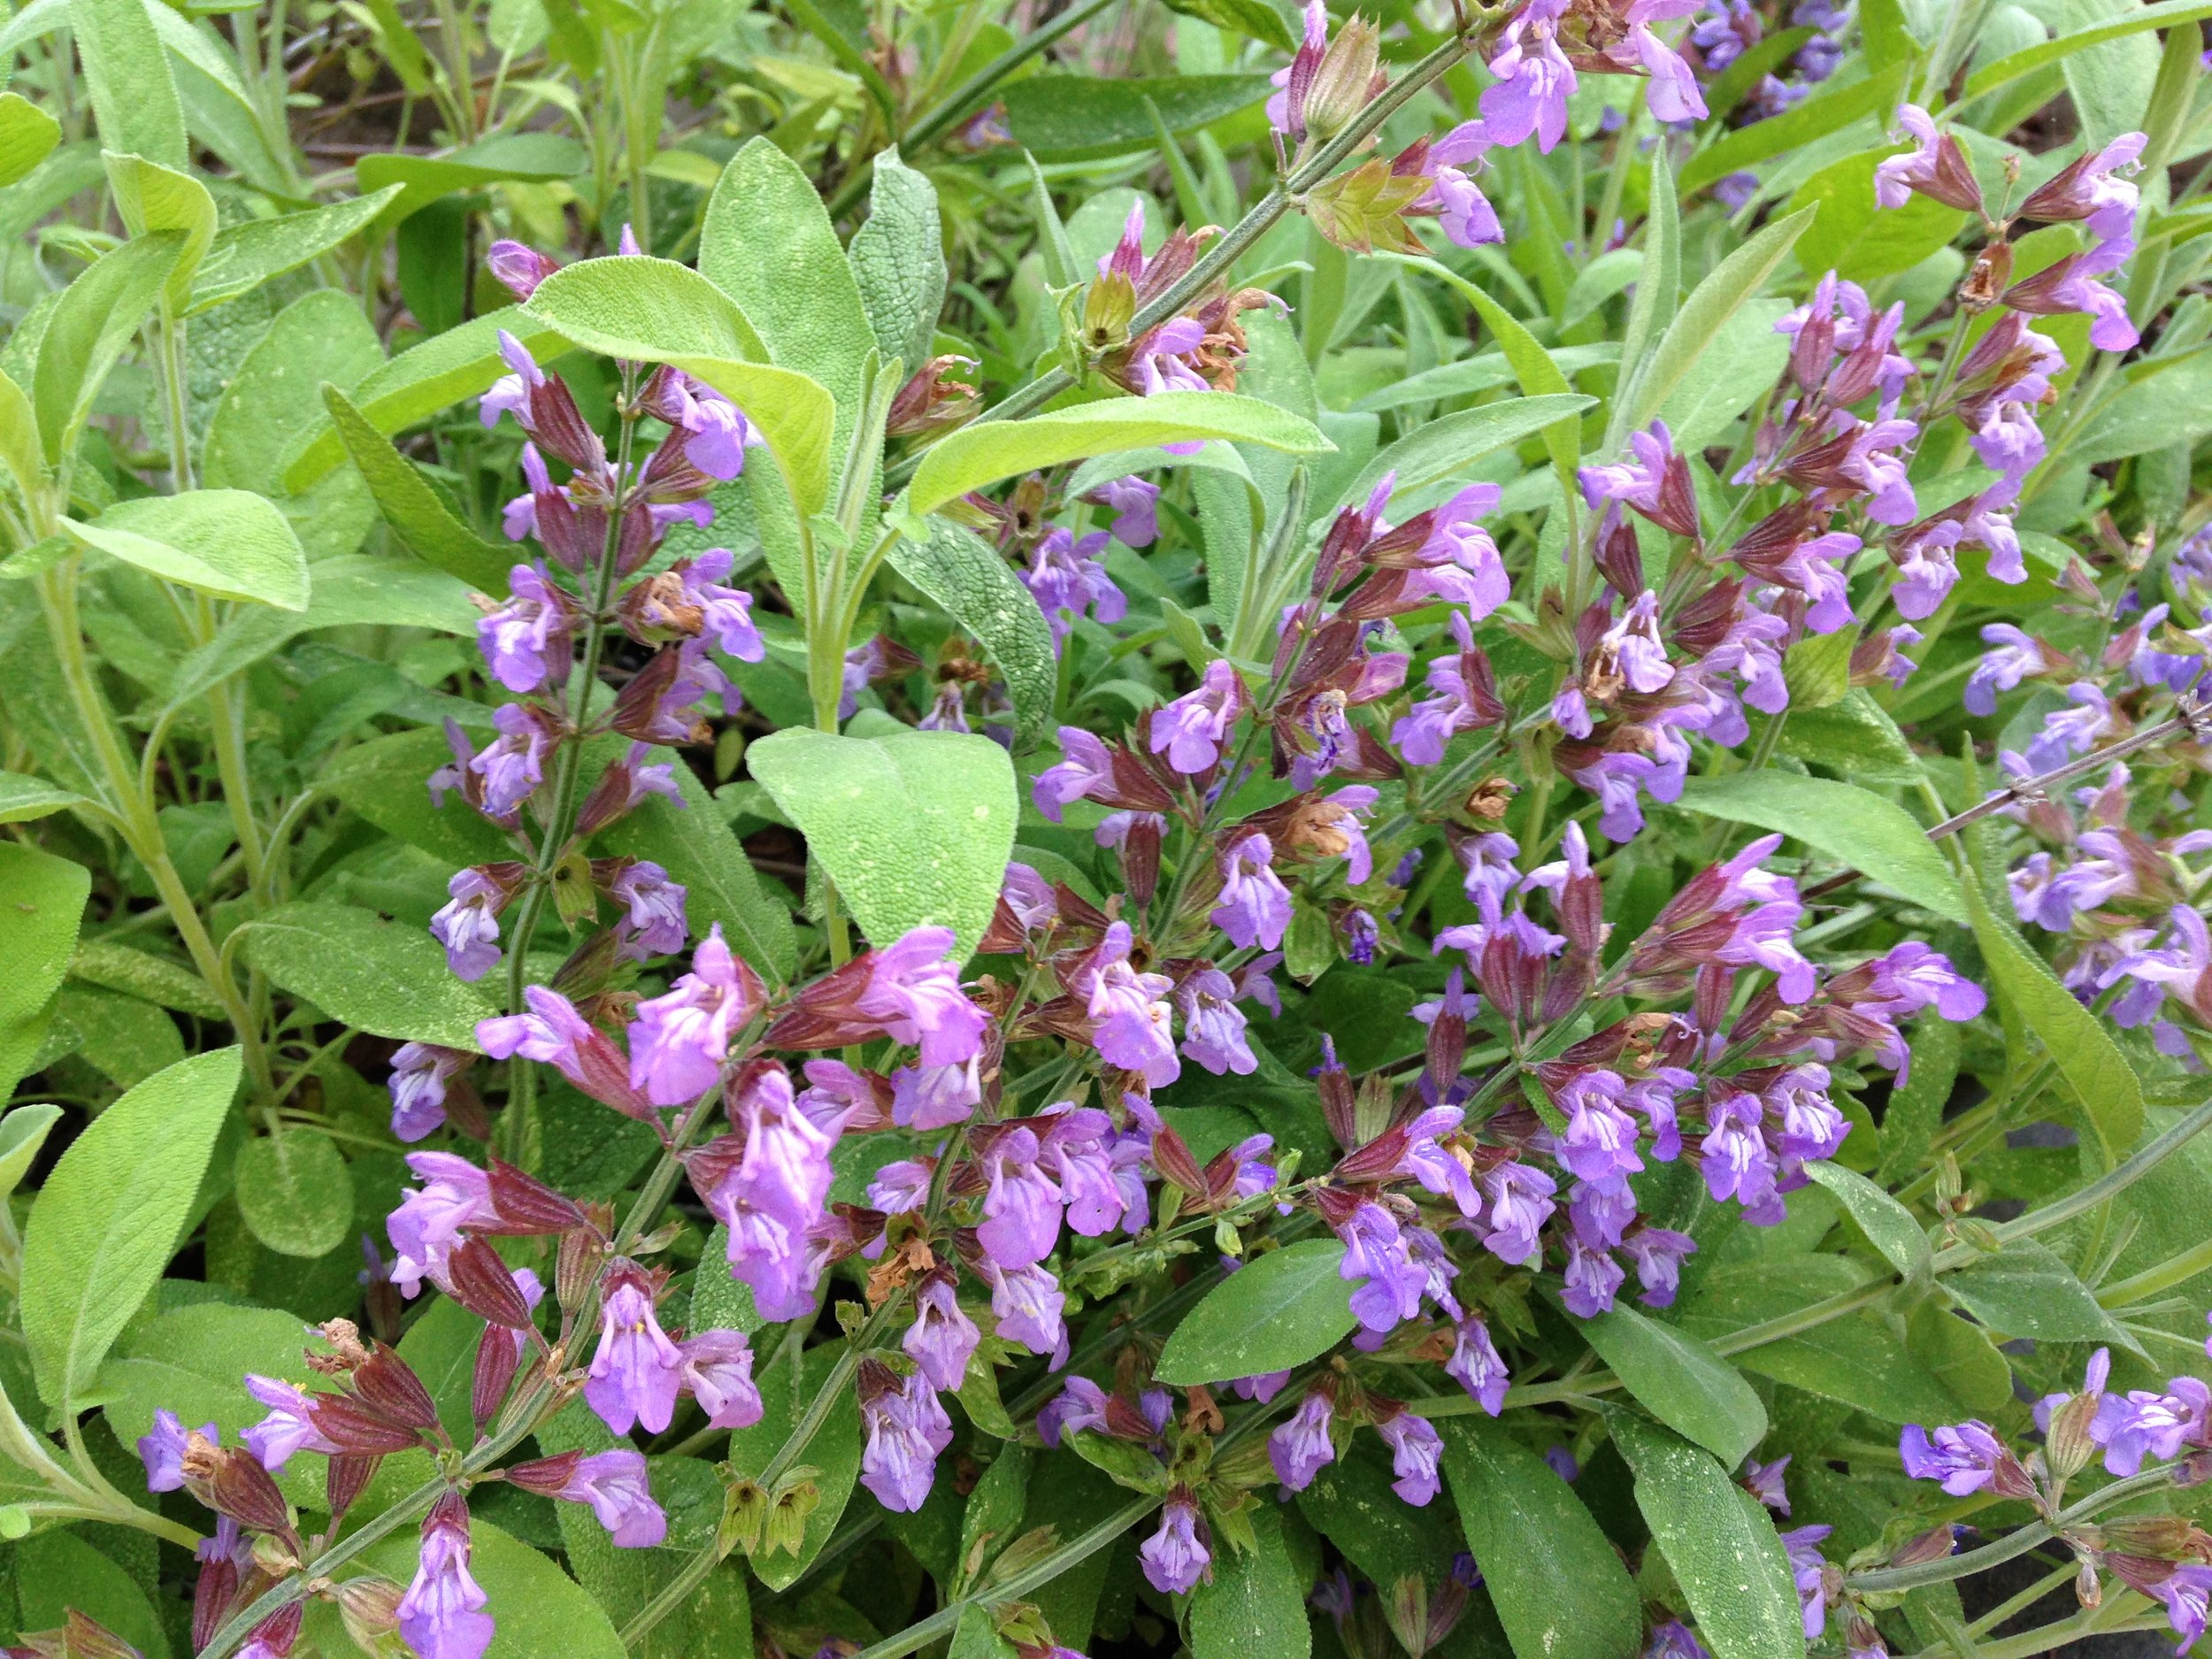 Sage blooming in my garden.